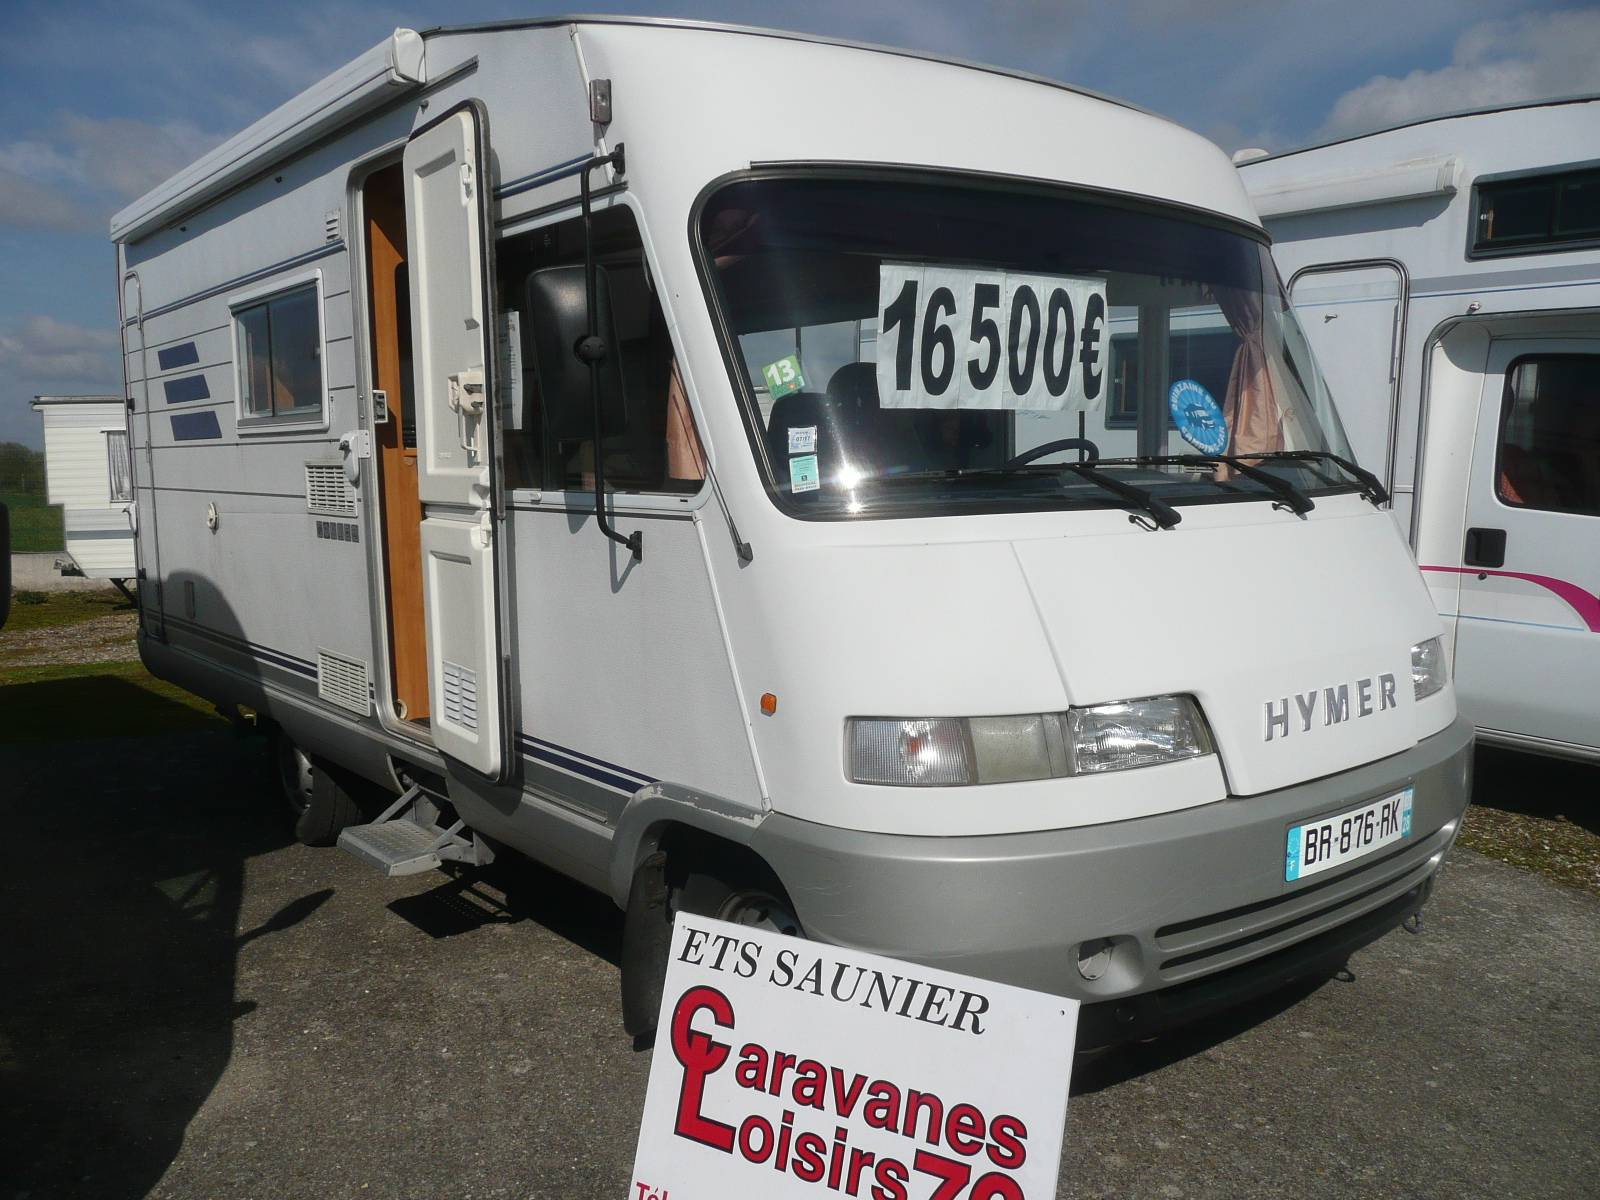 Vente camping car hymer occasion